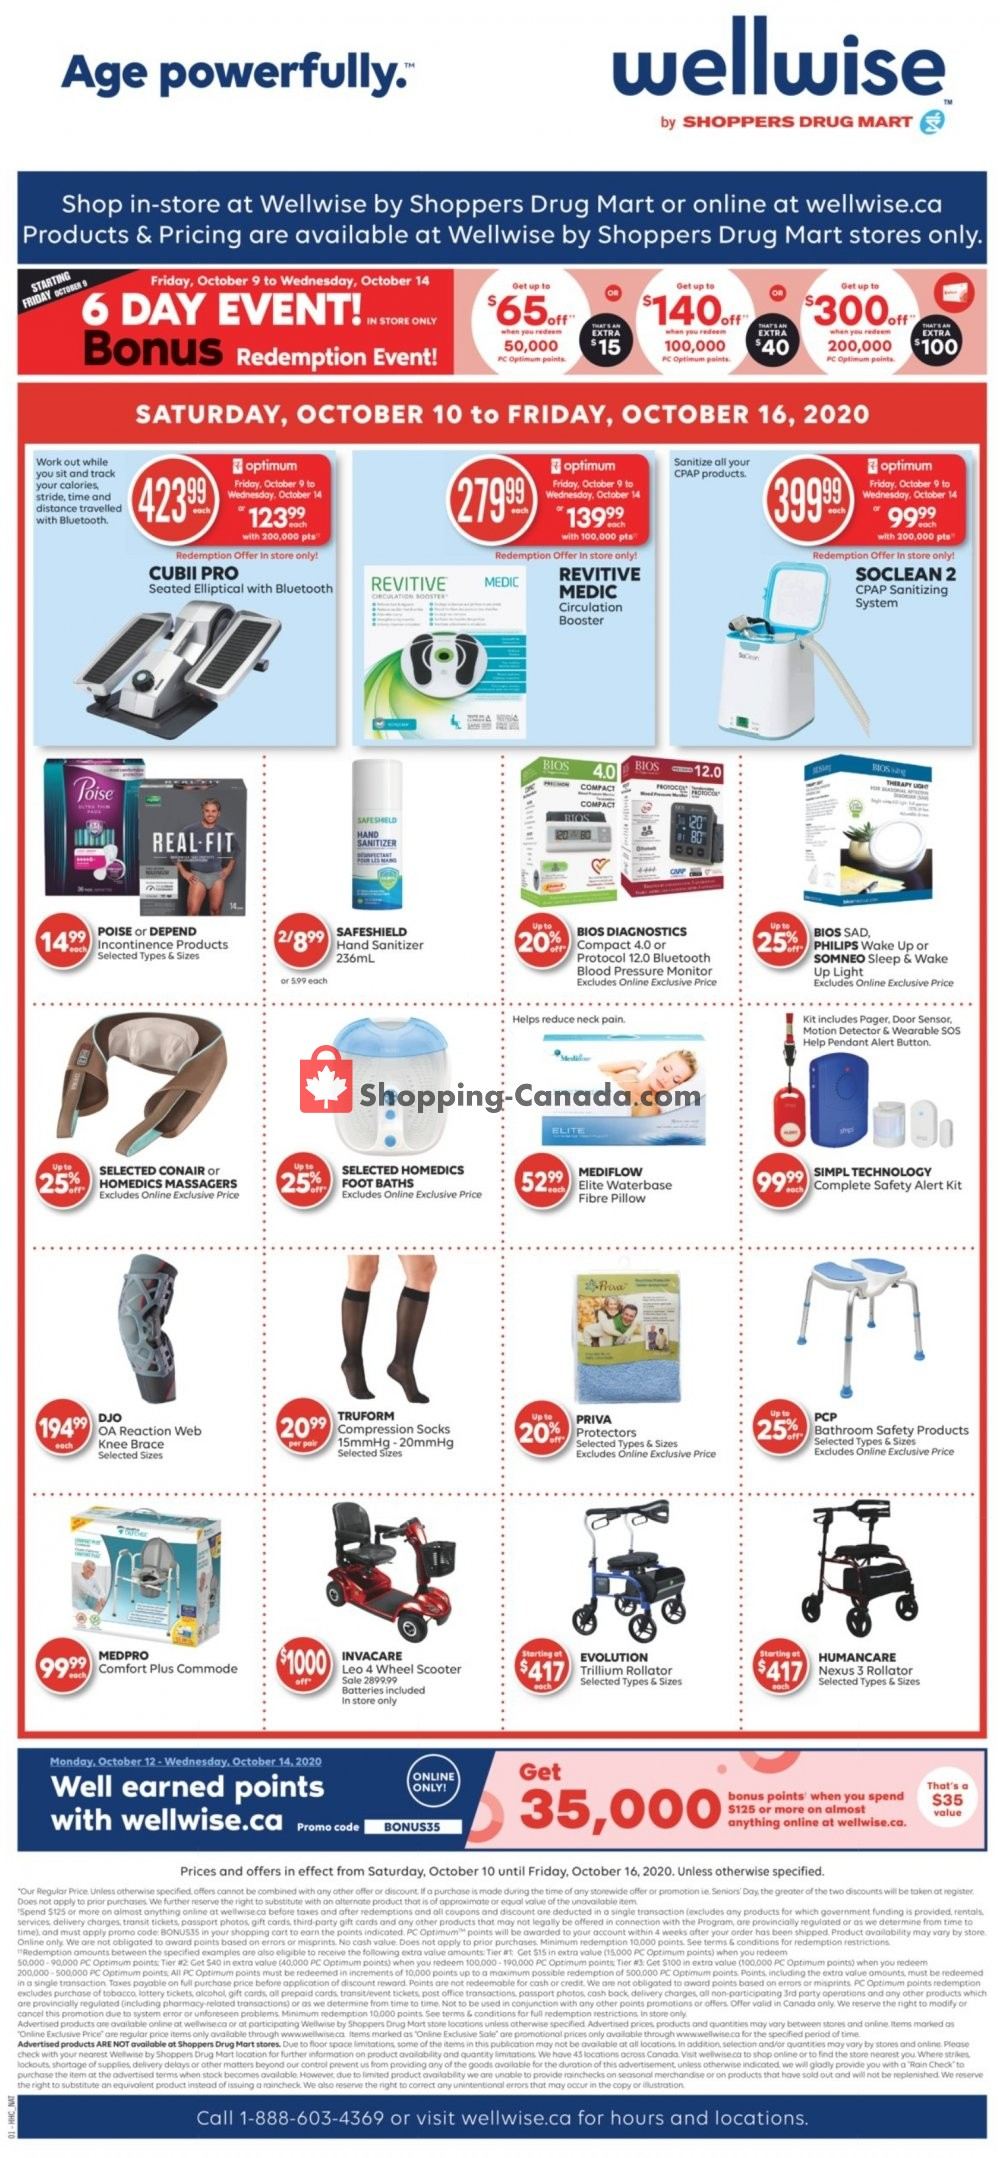 Flyer WellWise by Shoppers Drug Mart Canada - from Saturday October 10, 2020 to Friday October 16, 2020